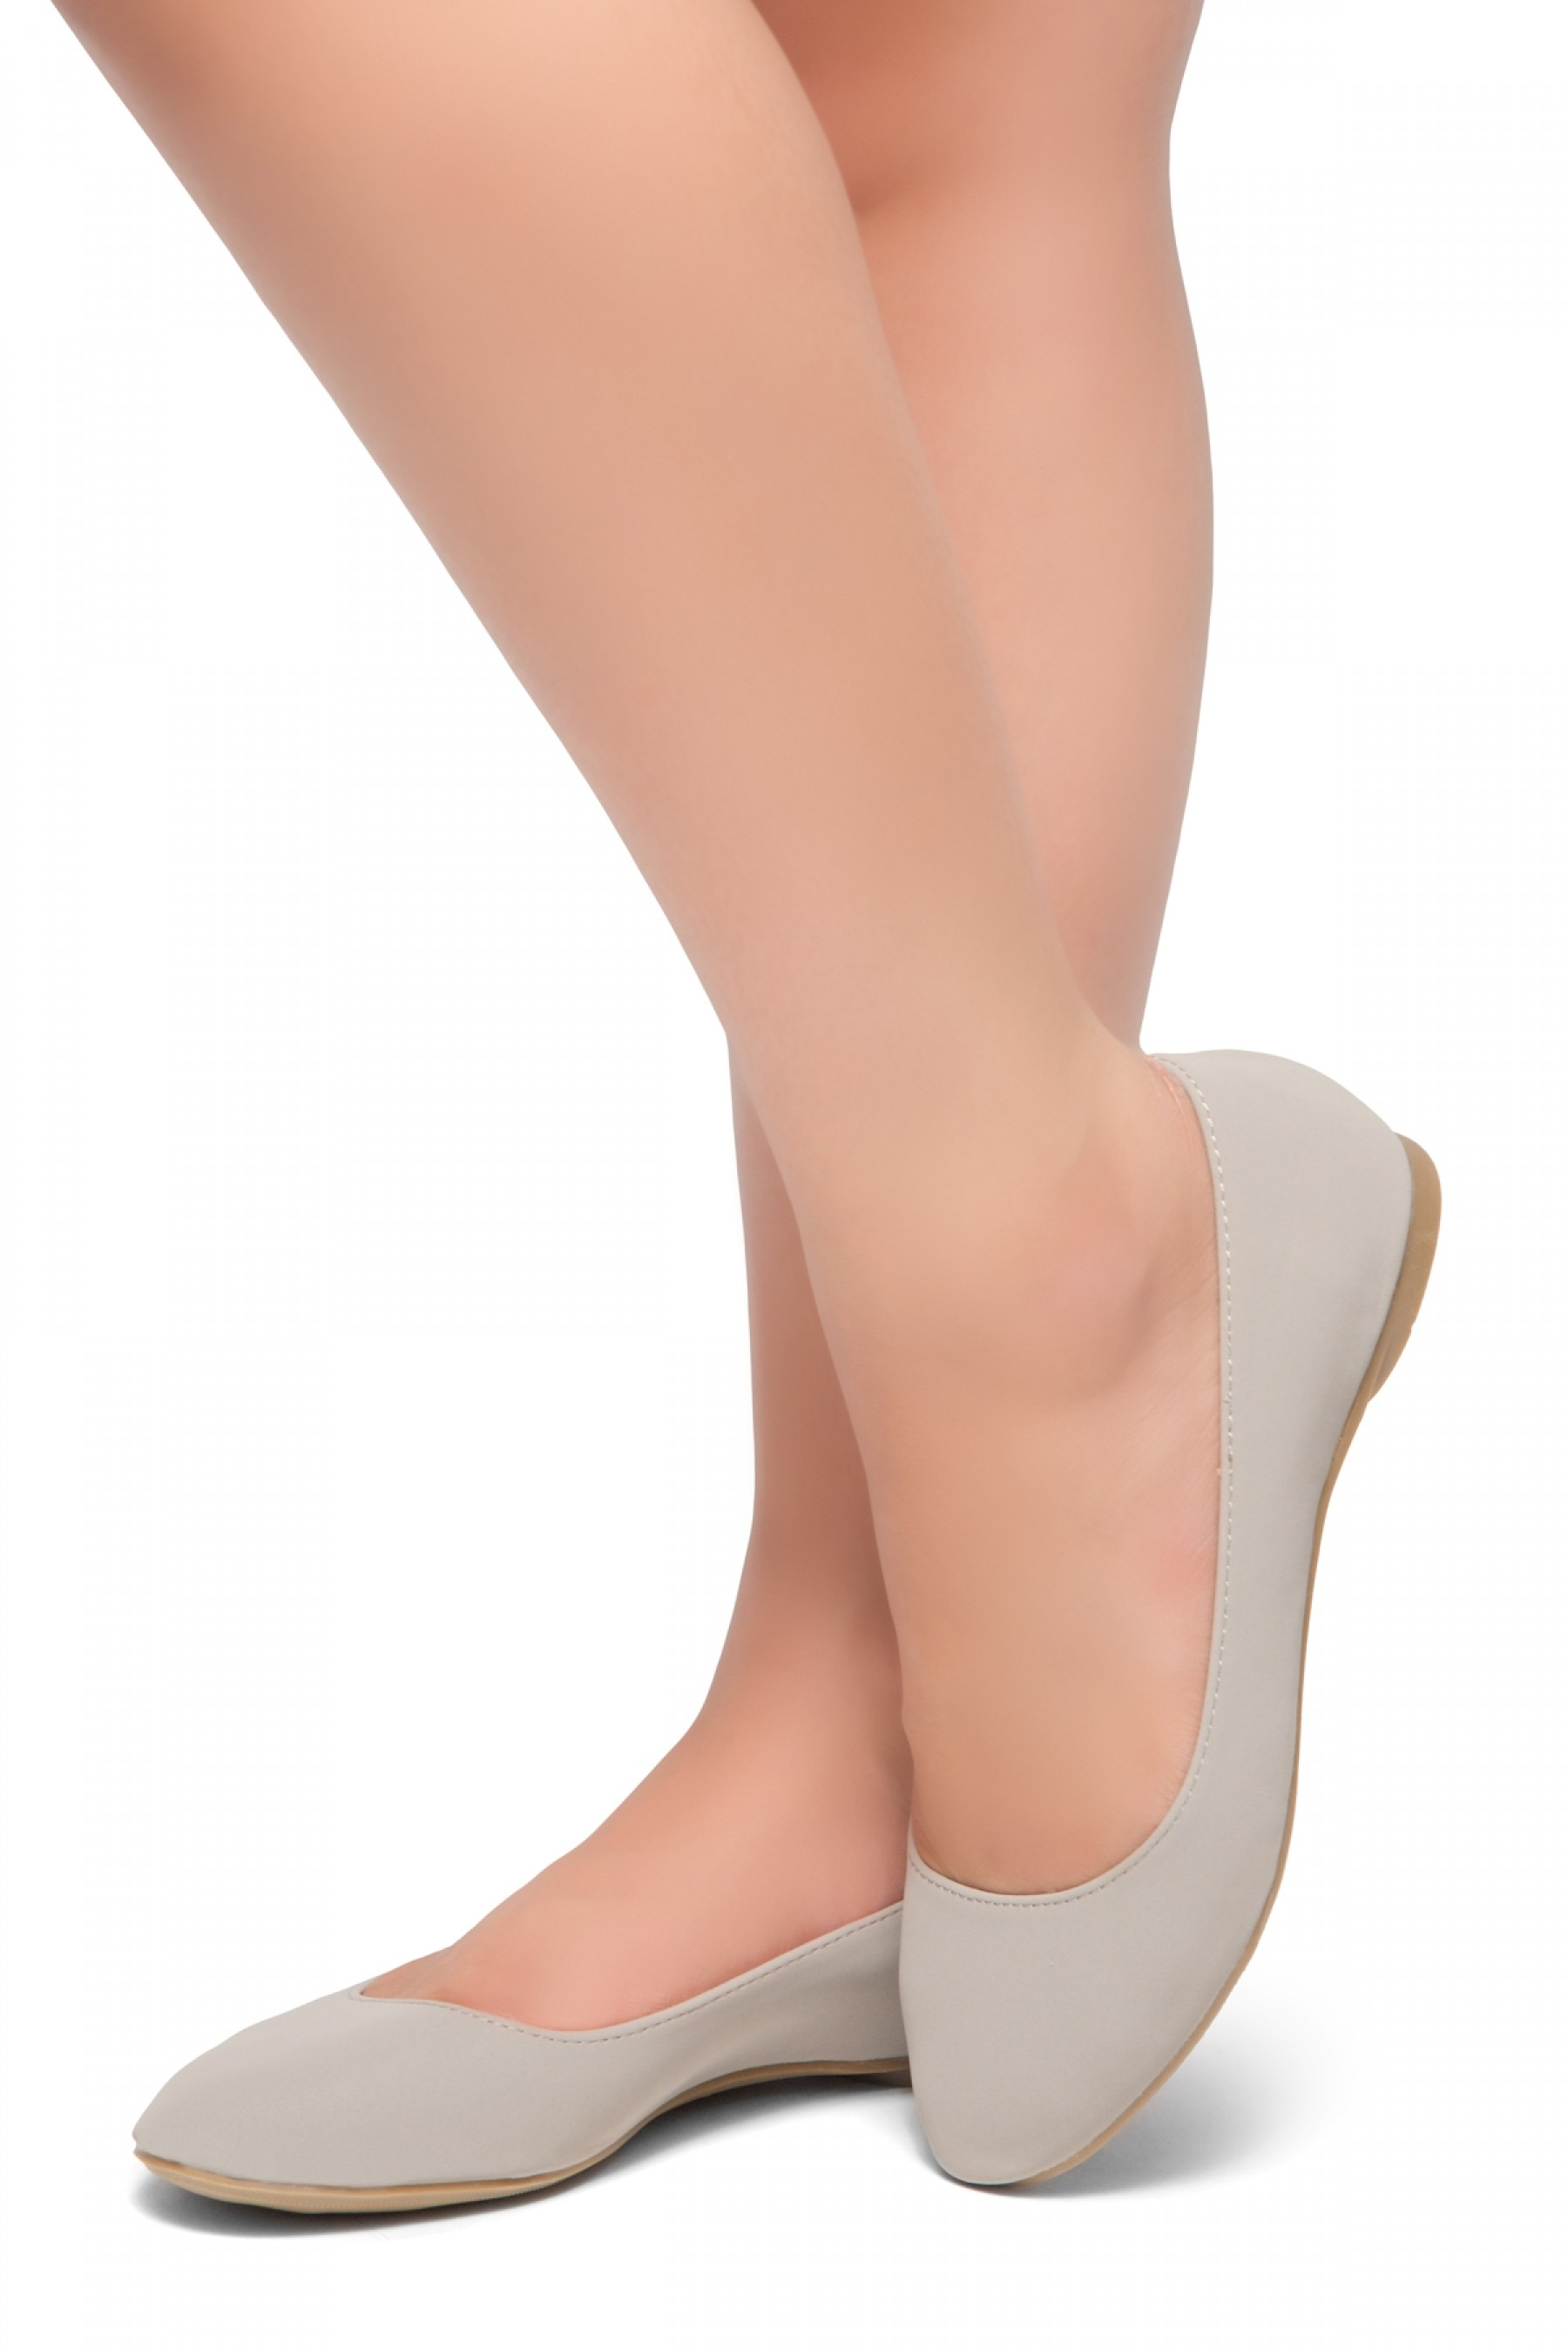 HerStyle Memory Forever -Round Toe, No detail, Ballet Flat (Grey)